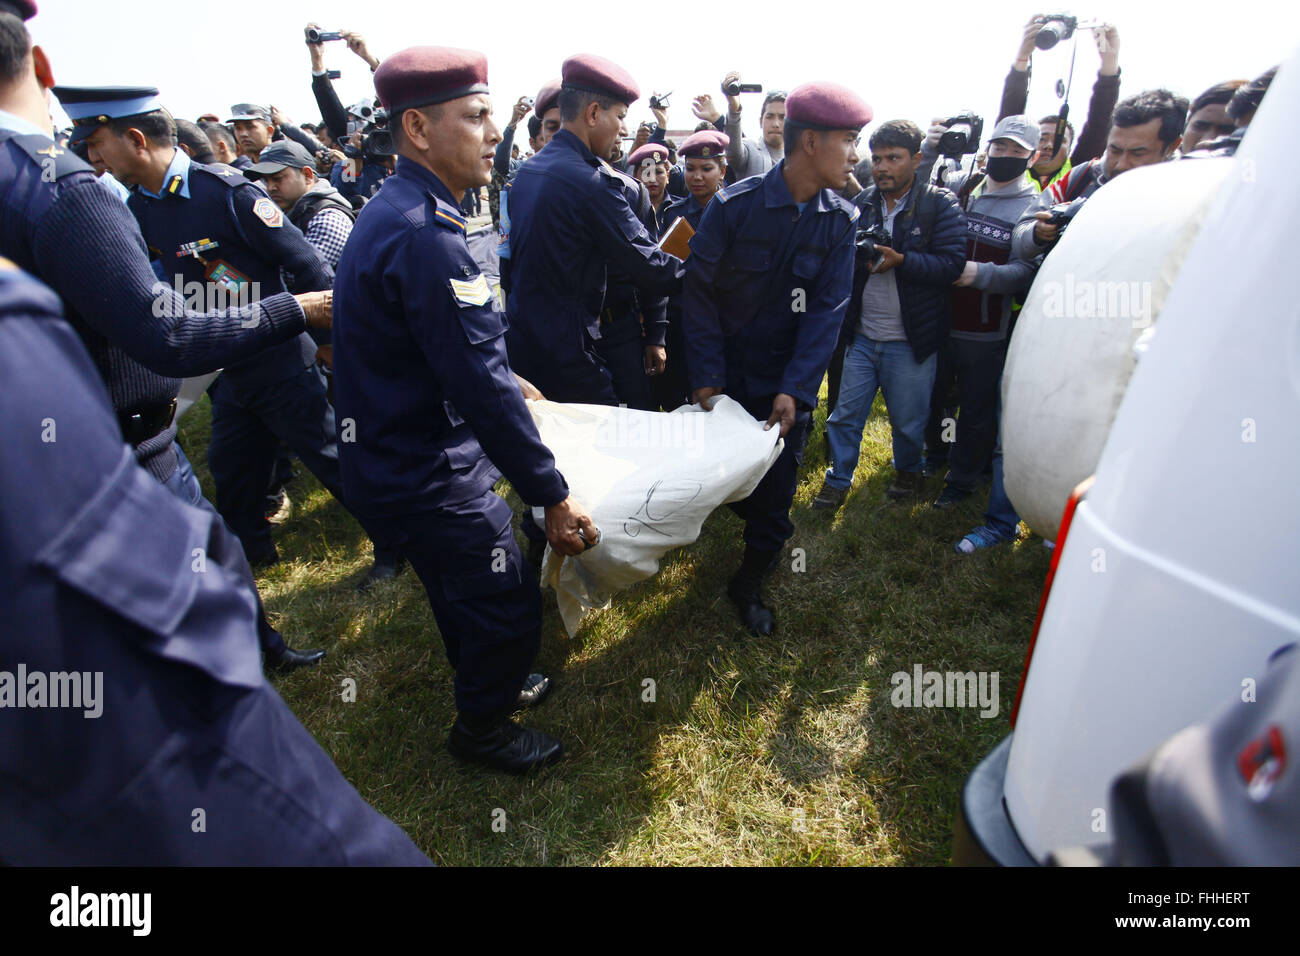 Pokhara. 25th Feb, 2016. Nepalese policemen and army personnel carry bodies of those who died in an aircraft crash - Stock Image